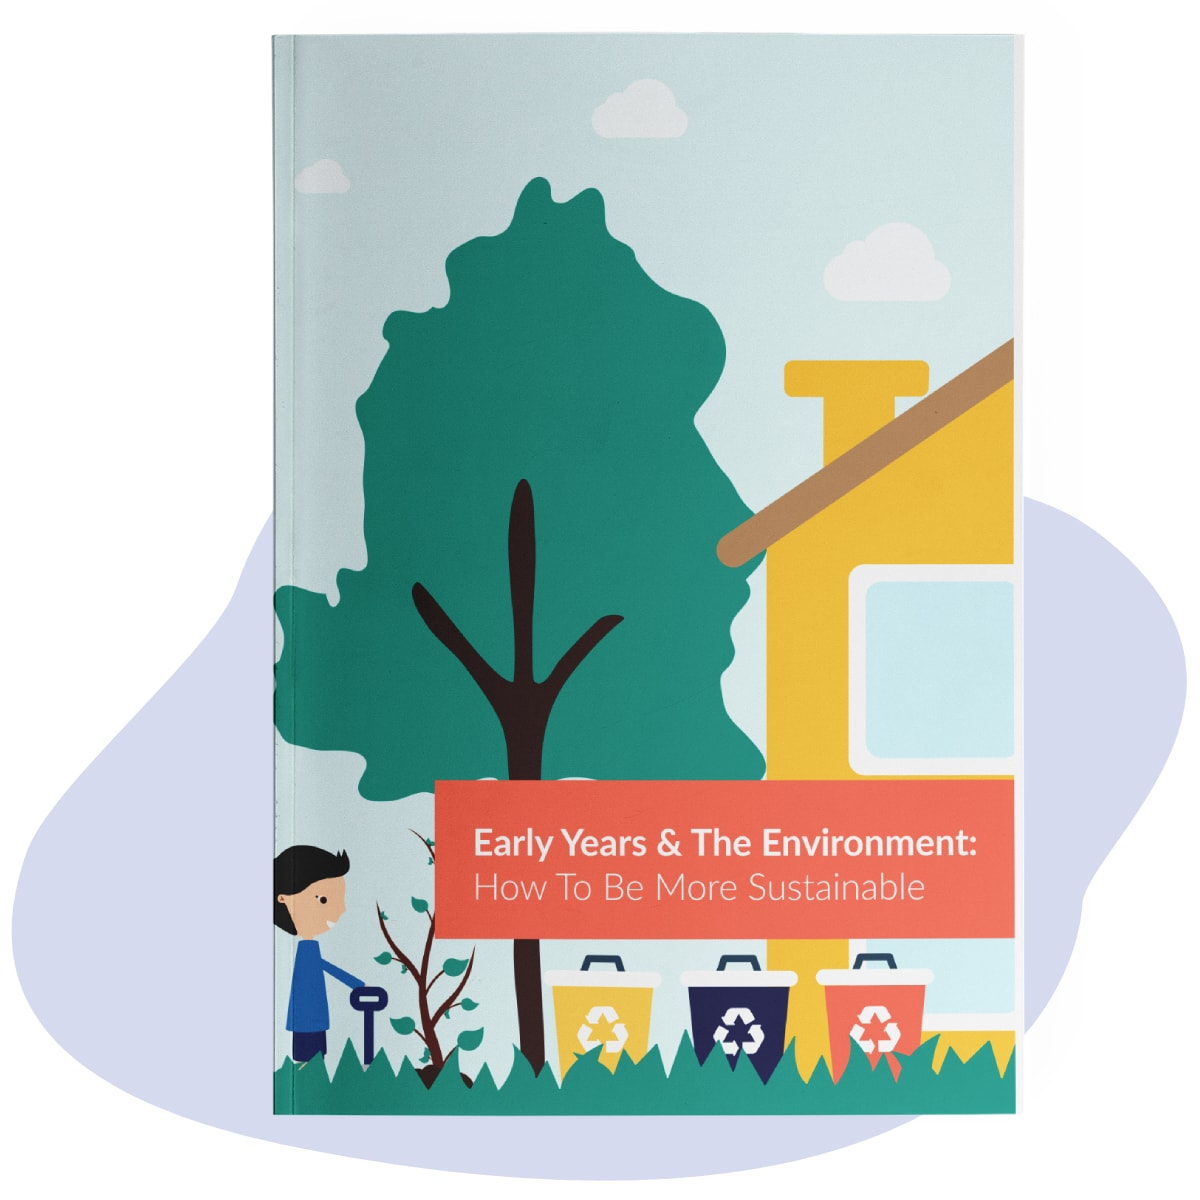 Early Years and The Environment: How to Be More Sustainable